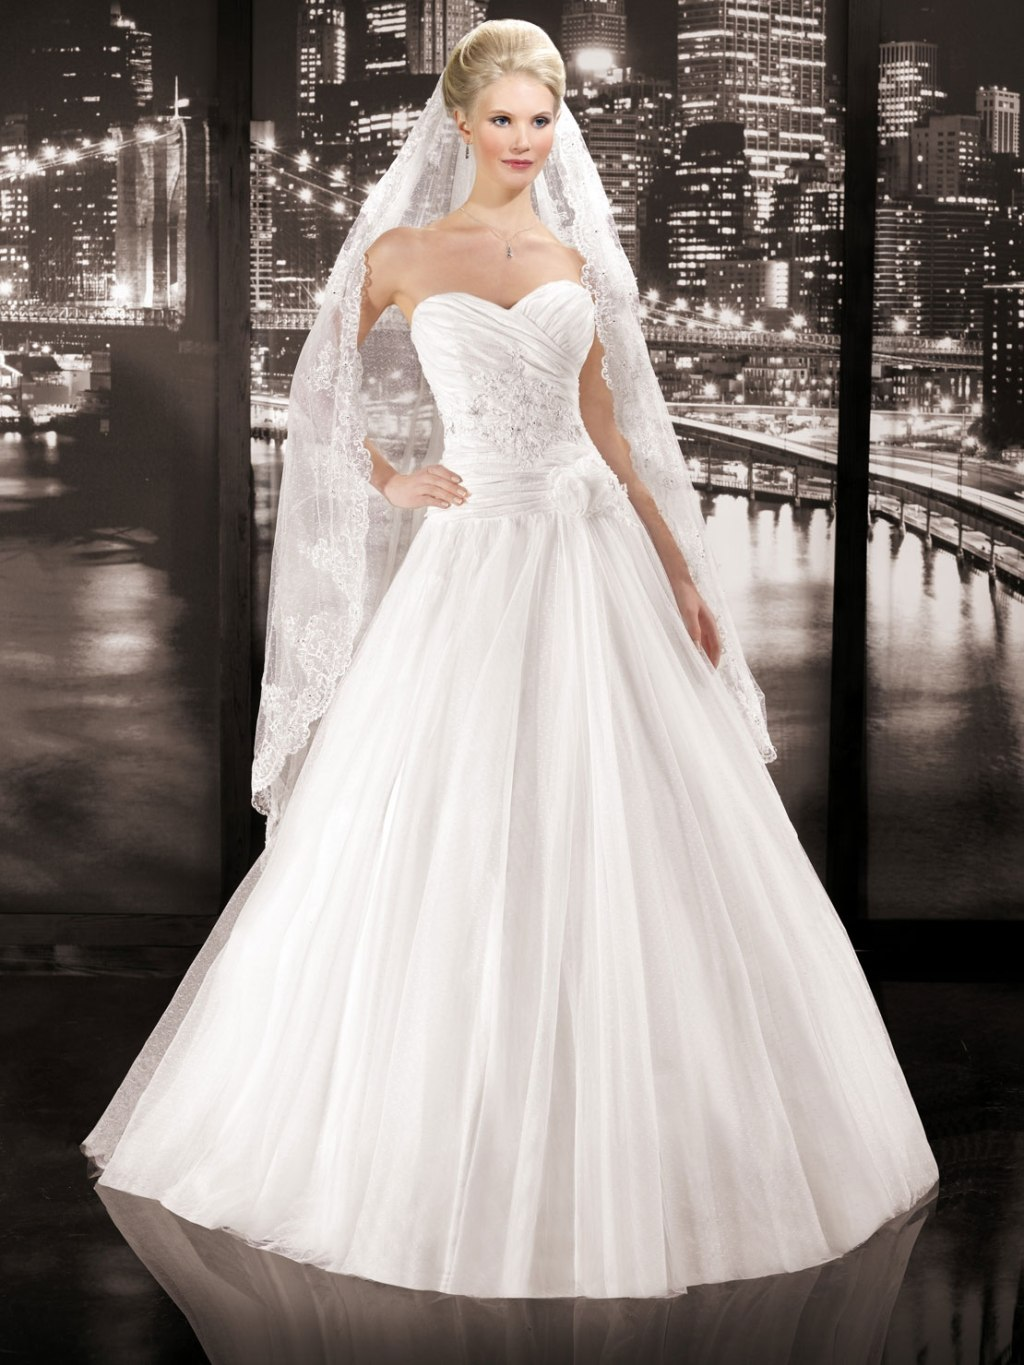 Miss paris 2014 spring bridal collection ii the for Wedding dress in paris